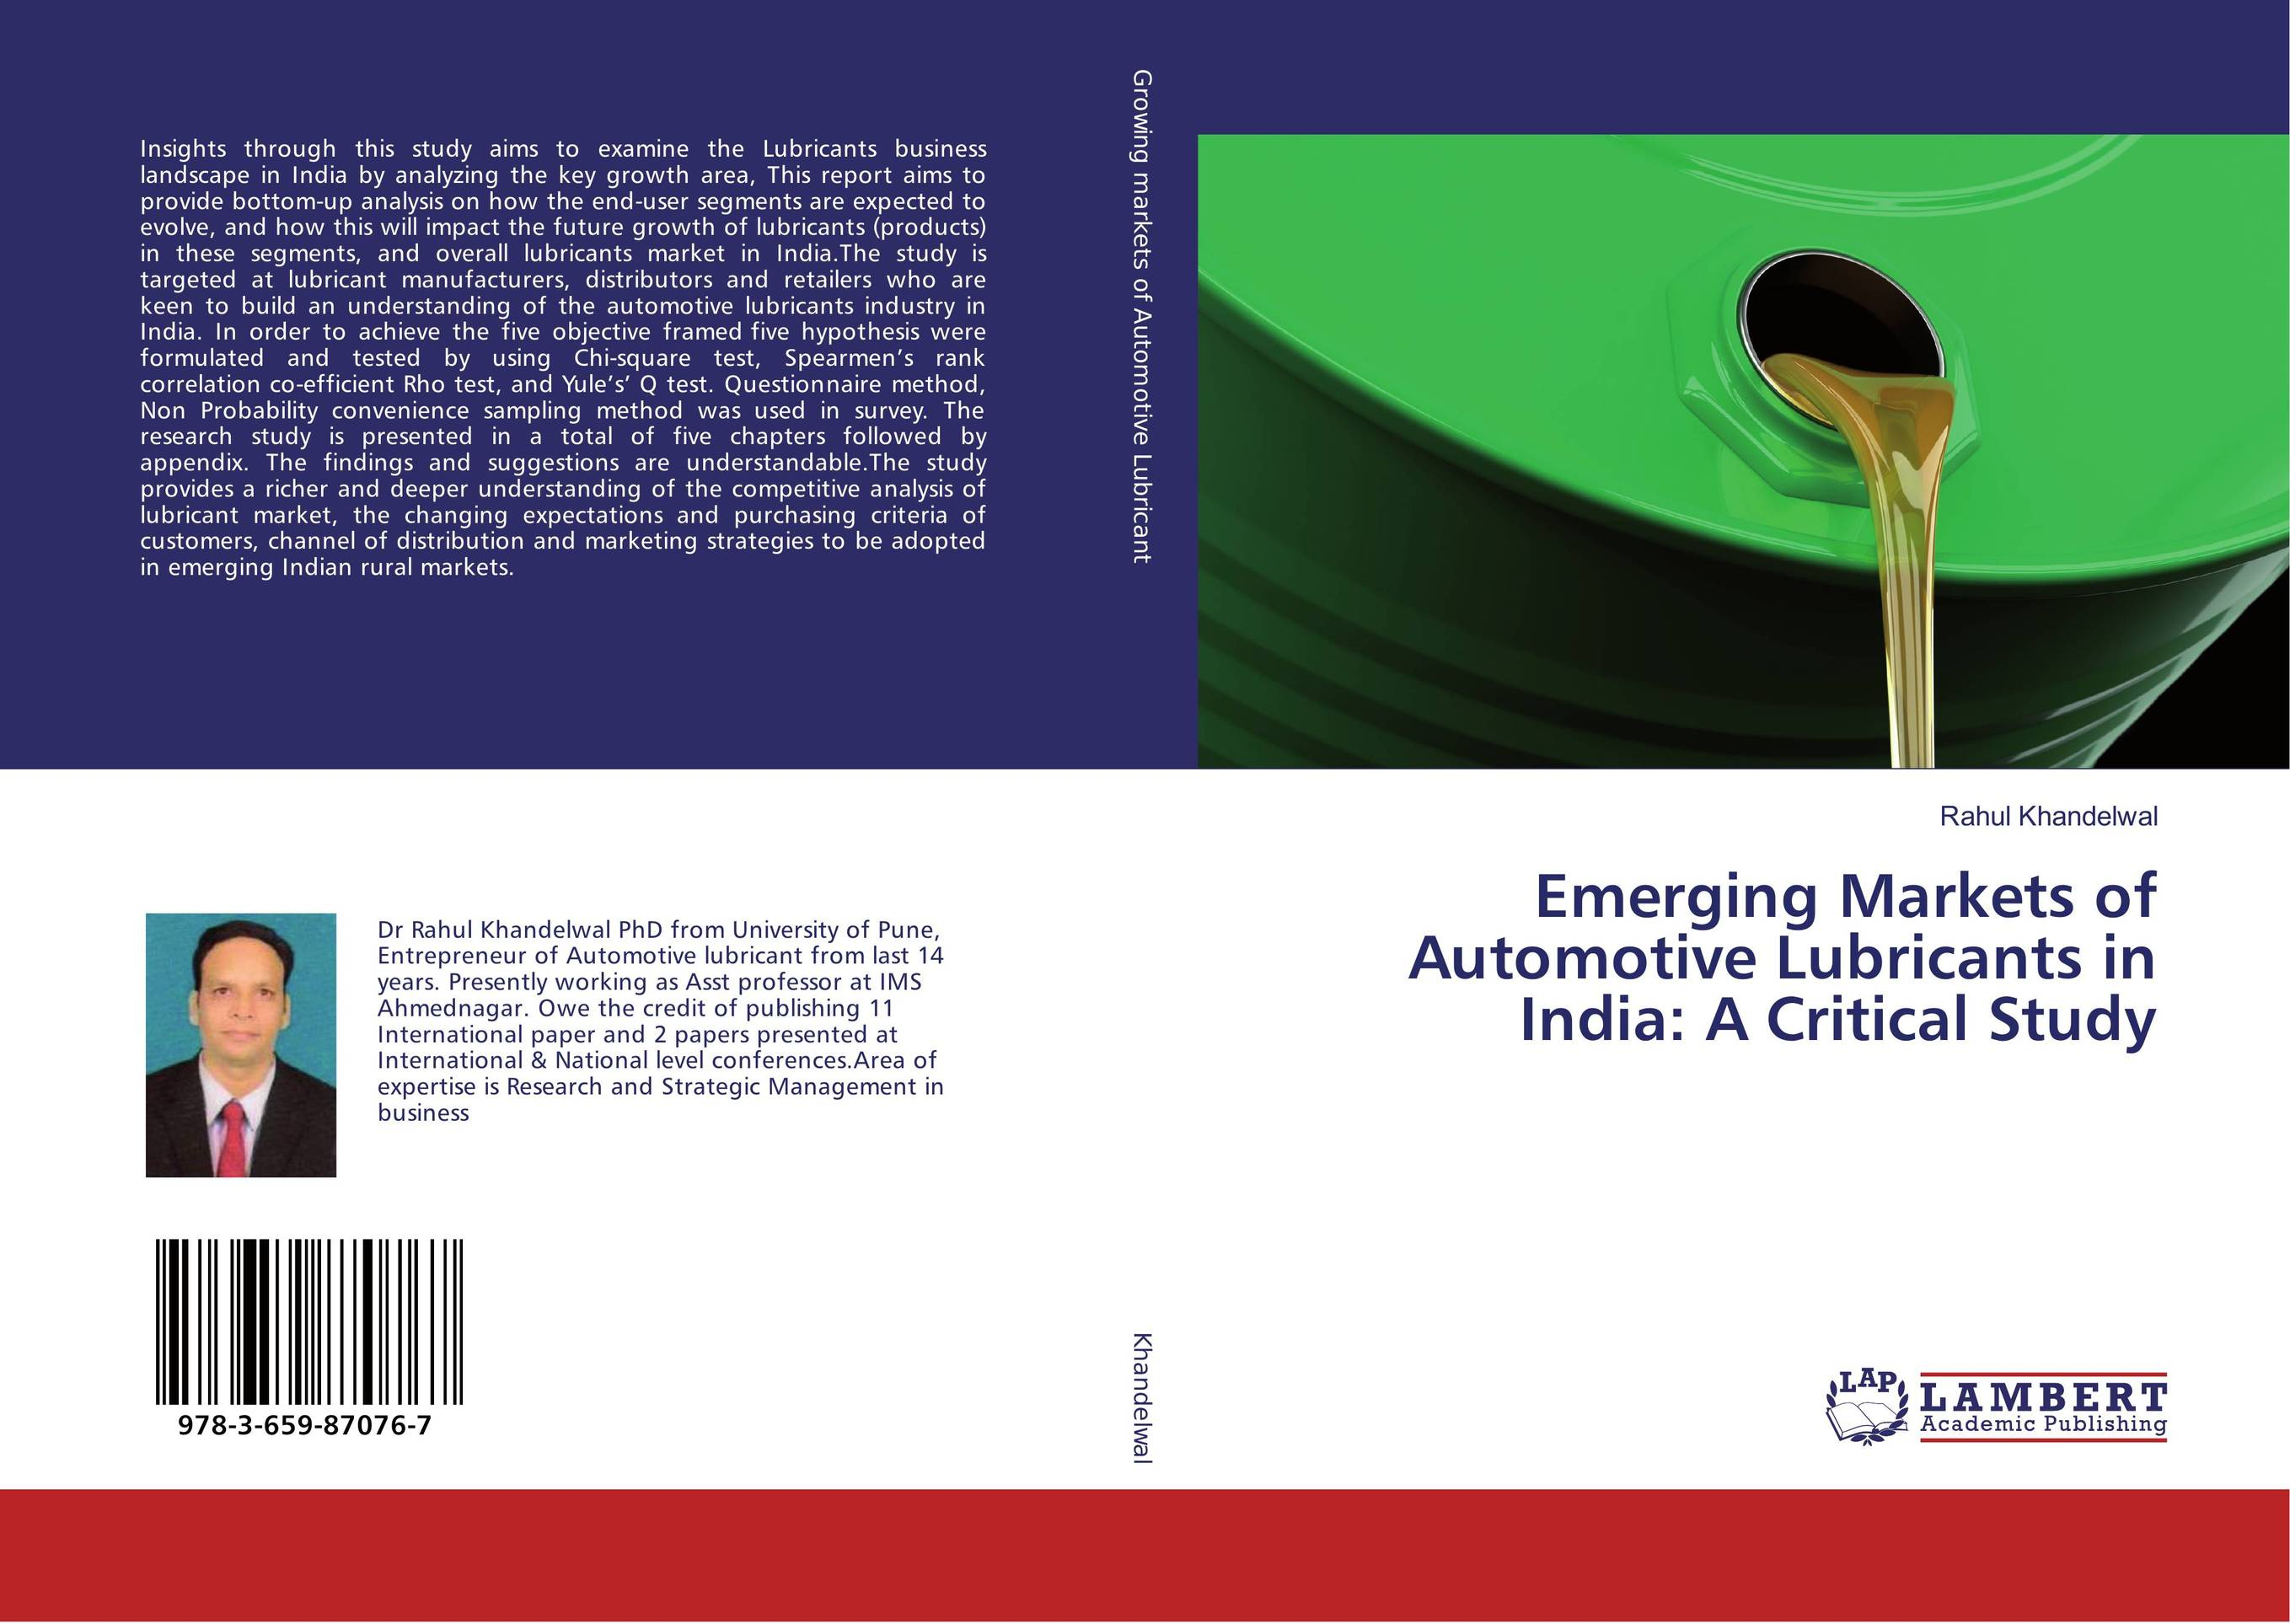 Emerging Markets of Automotive Lubricants in India: A Critical Study deepita chakravarty expansion of markets and women workers in india